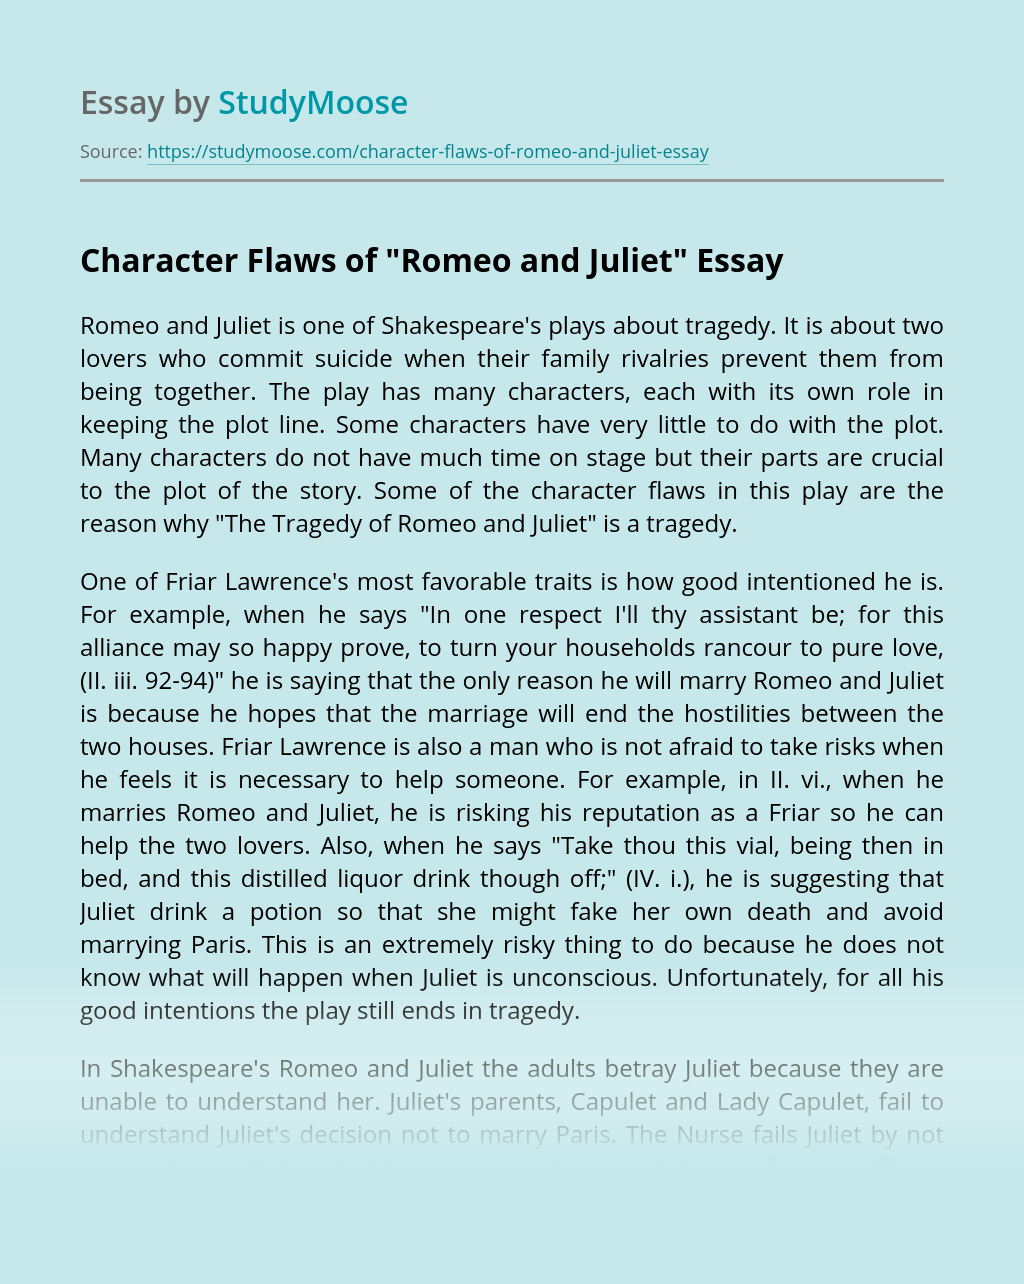 """Character Flaws of """"Romeo and Juliet"""""""